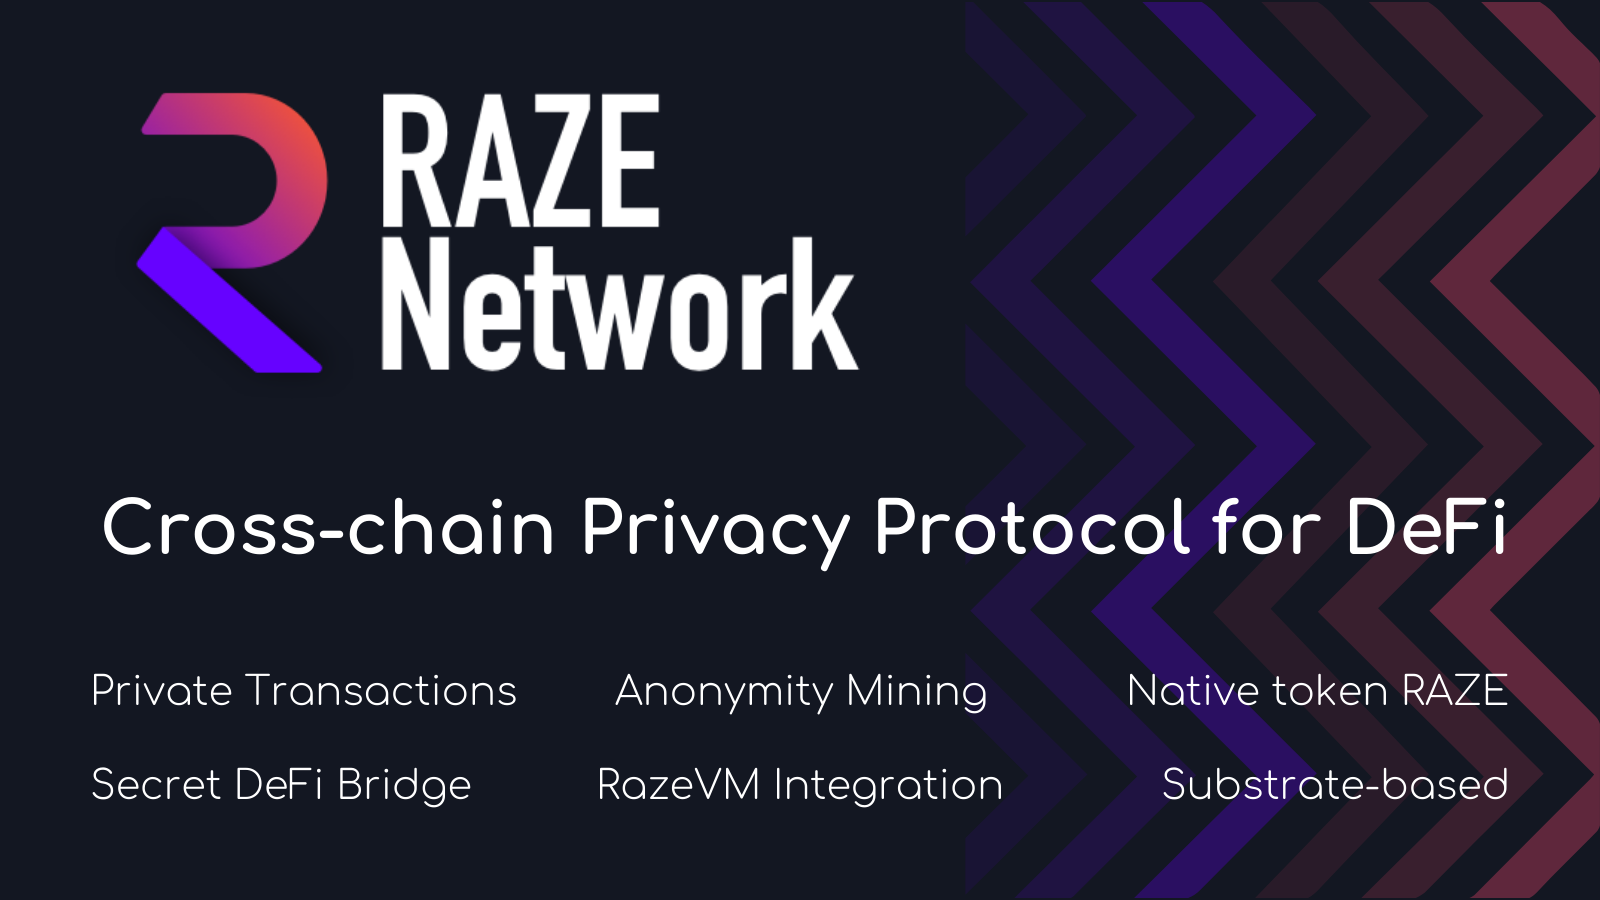 Raze Network Launches Protocol to Enable Confidential Payments for DeFi Users